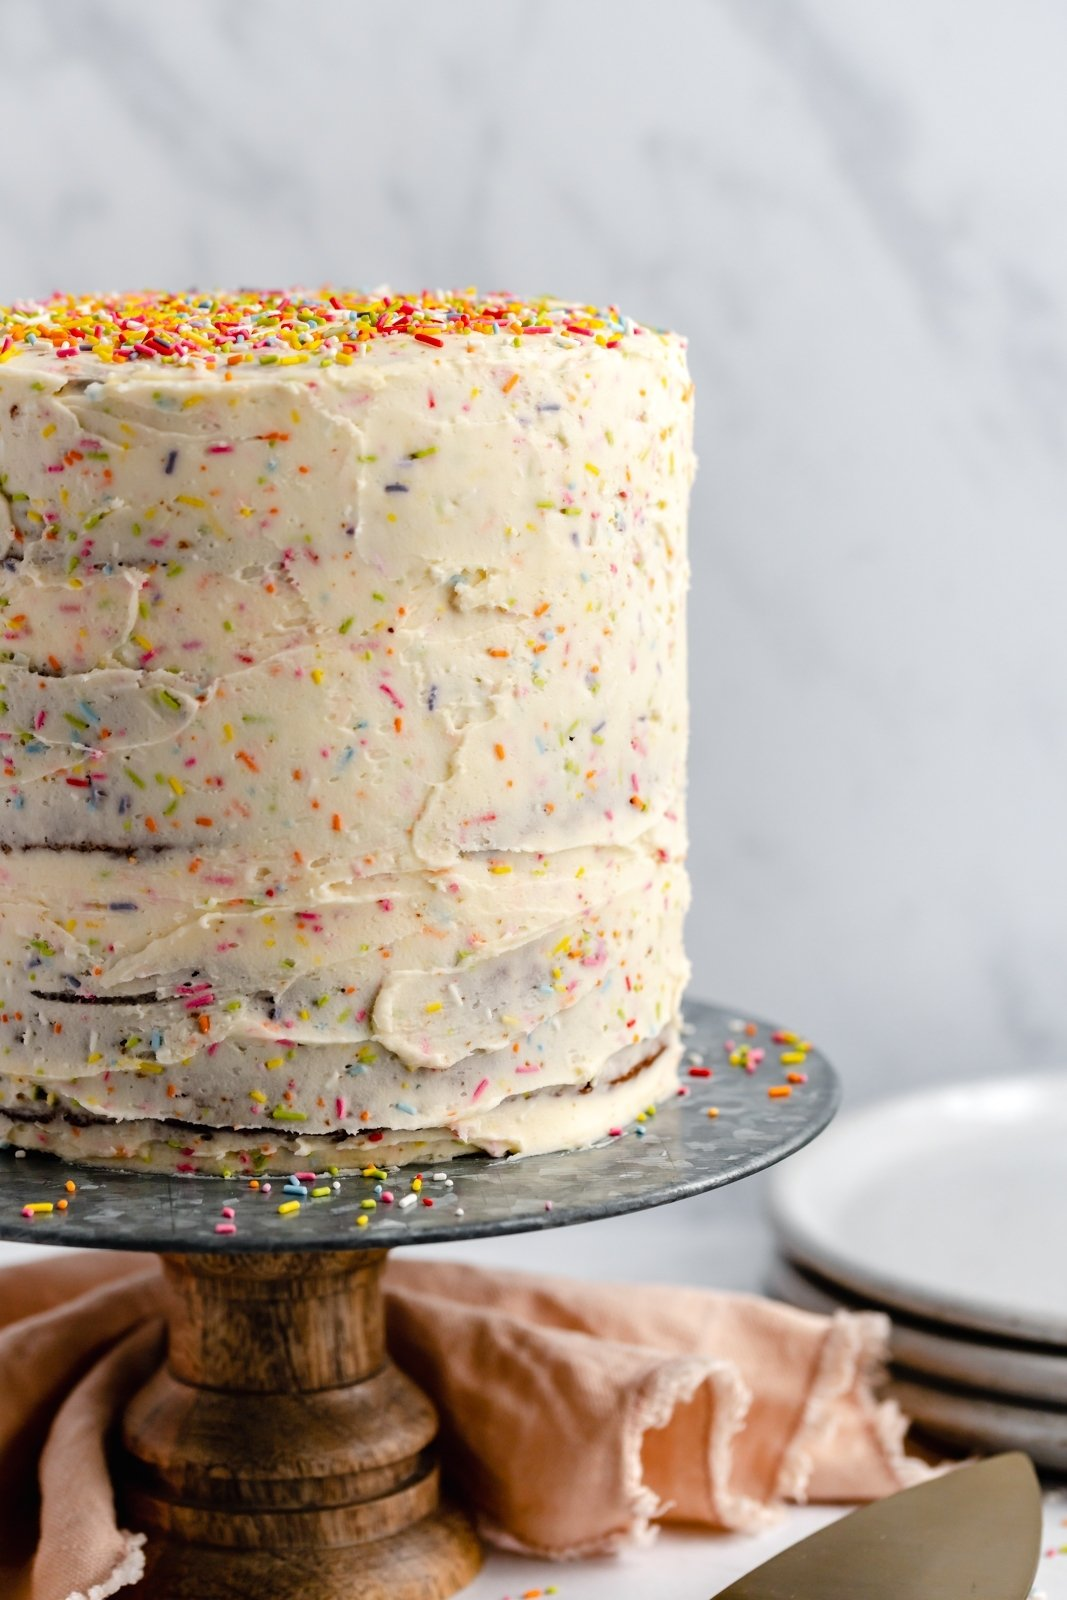 healthy birthday cake with sprinkles on a cake stand